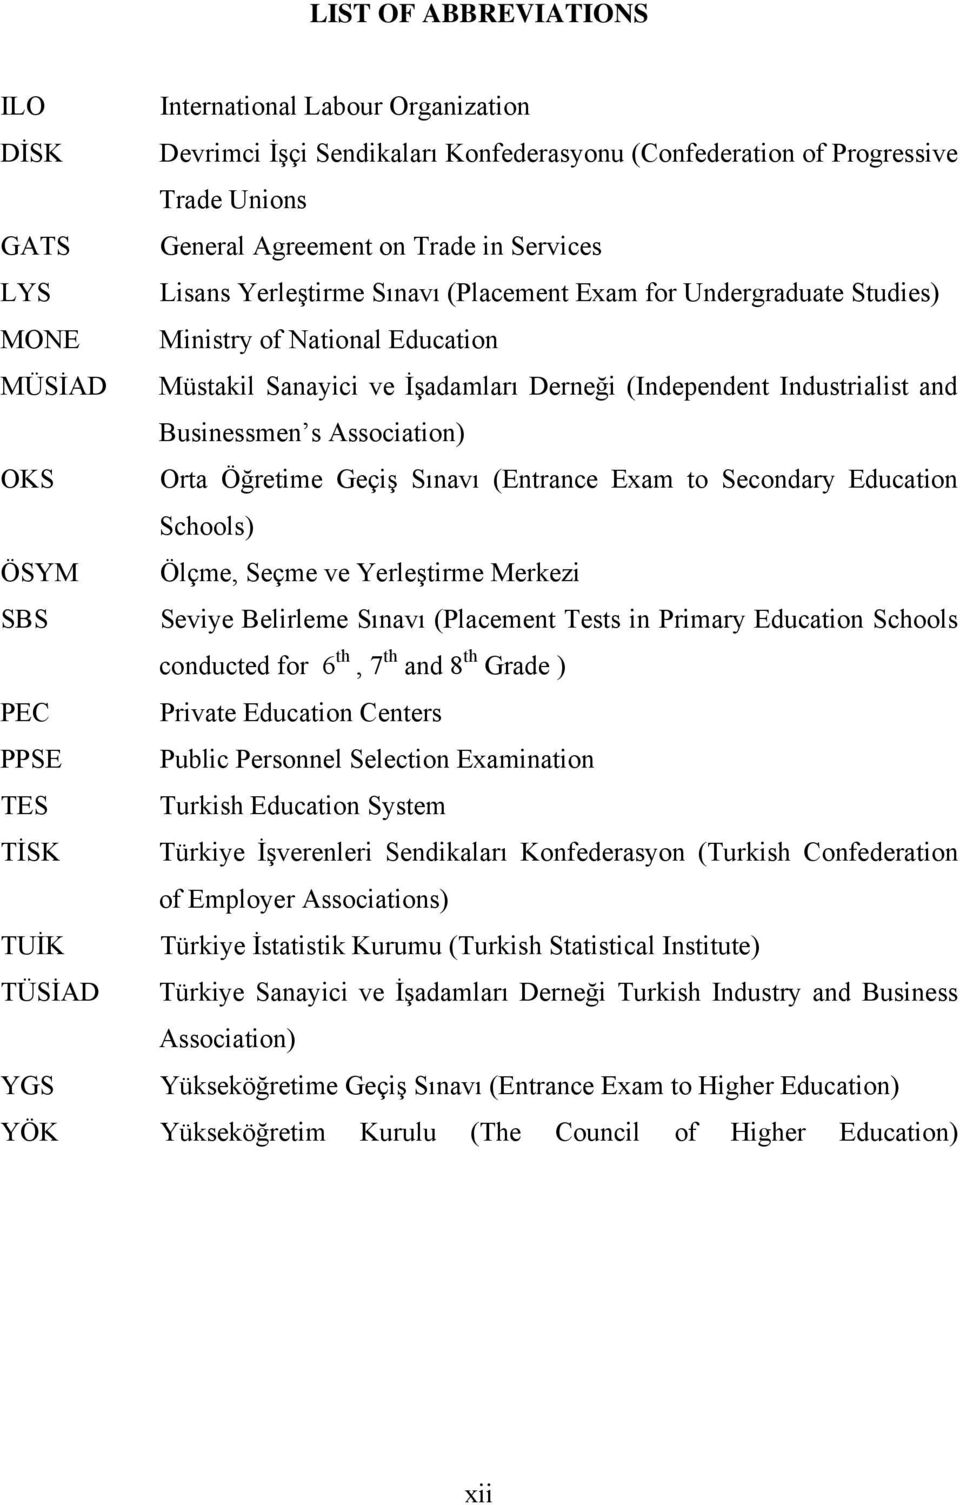 Association) OKS Orta Öğretime Geçiş Sınavı (Entrance Exam to Secondary Education Schools) ÖSYM Ölçme, Seçme ve Yerleştirme Merkezi SBS Seviye Belirleme Sınavı (Placement Tests in Primary Education